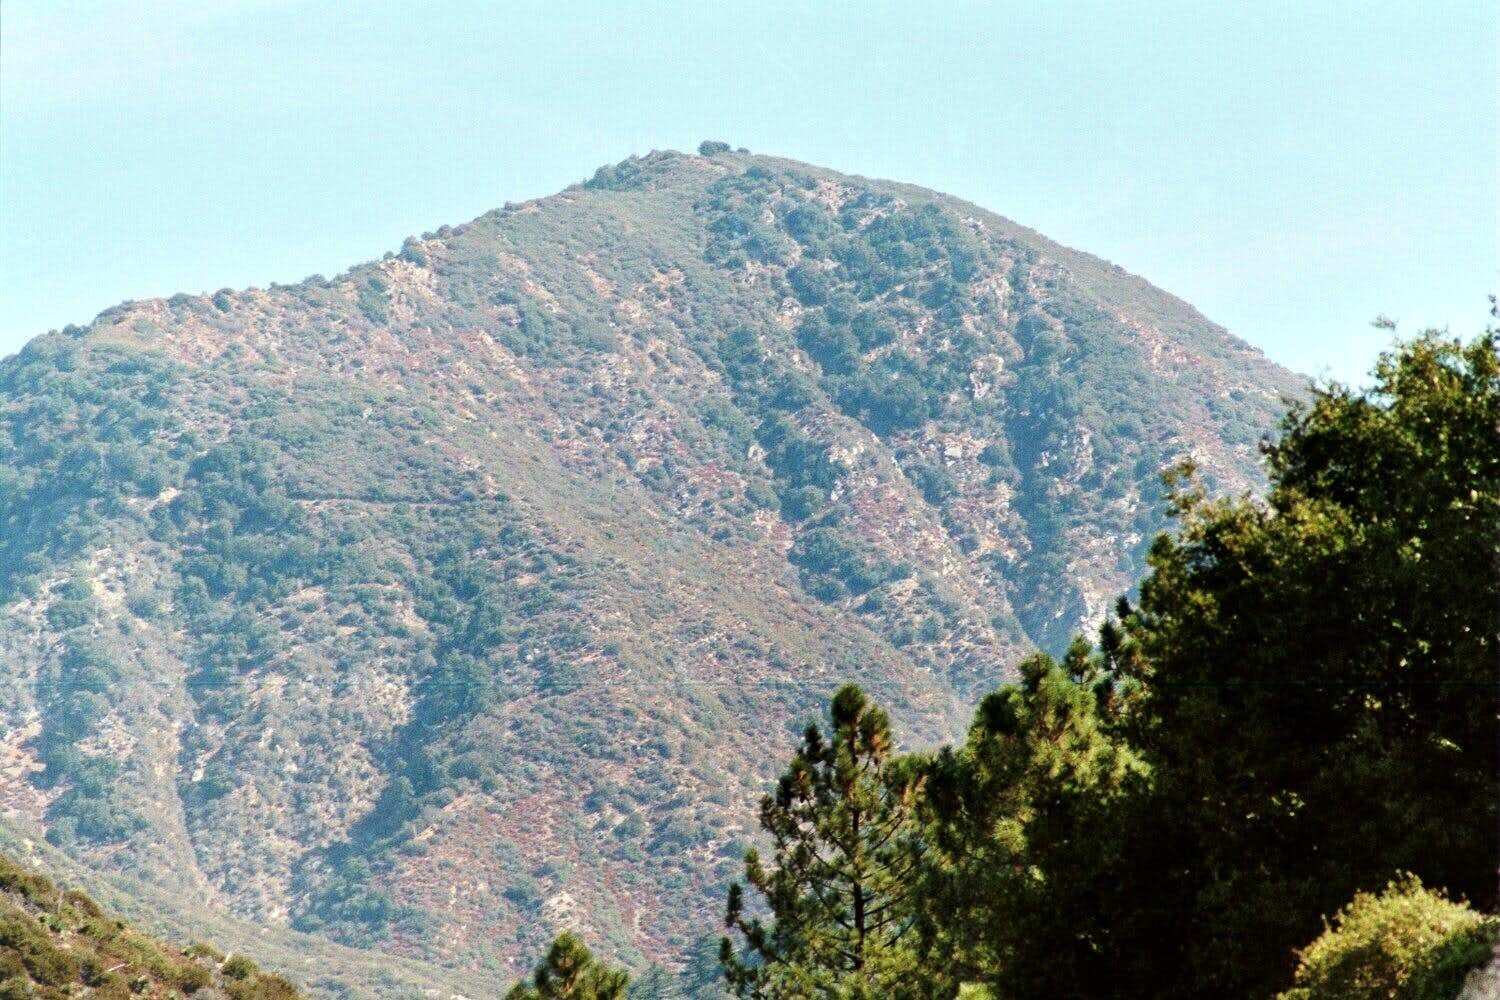 Mt. Lawlor